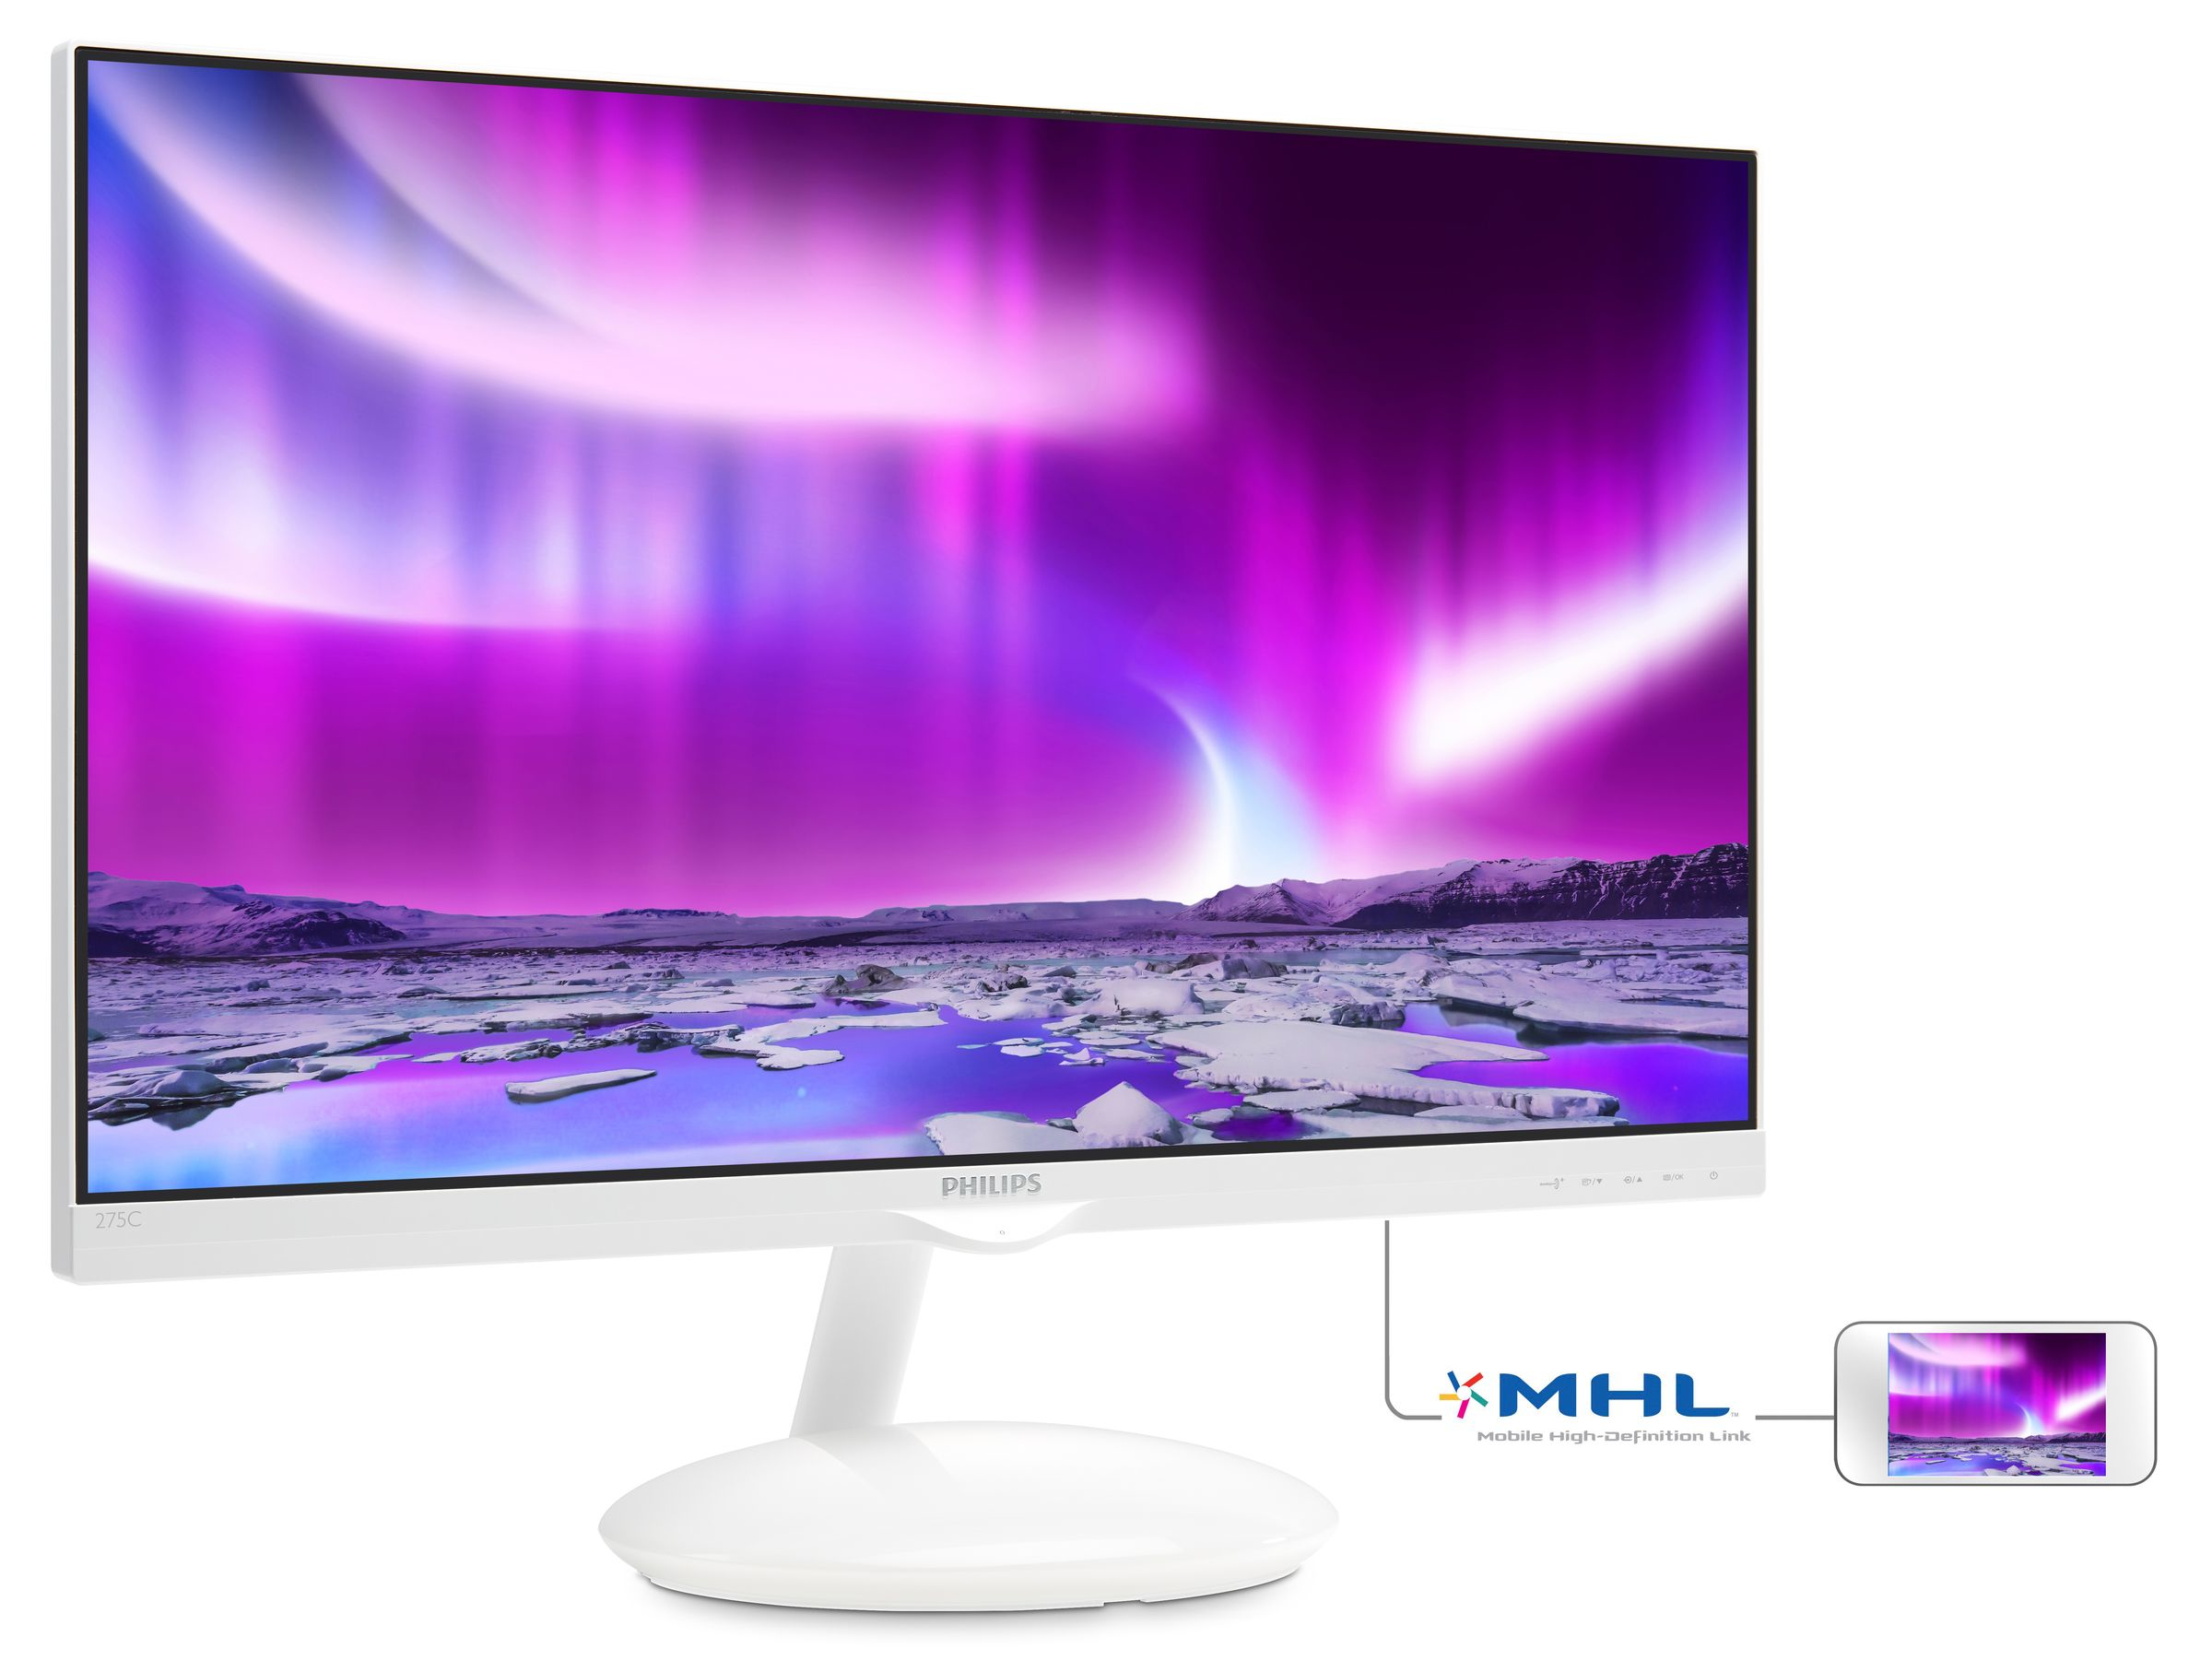 philips monitor lcd con ambiglow plus base 275c5qhgsw 00. Black Bedroom Furniture Sets. Home Design Ideas